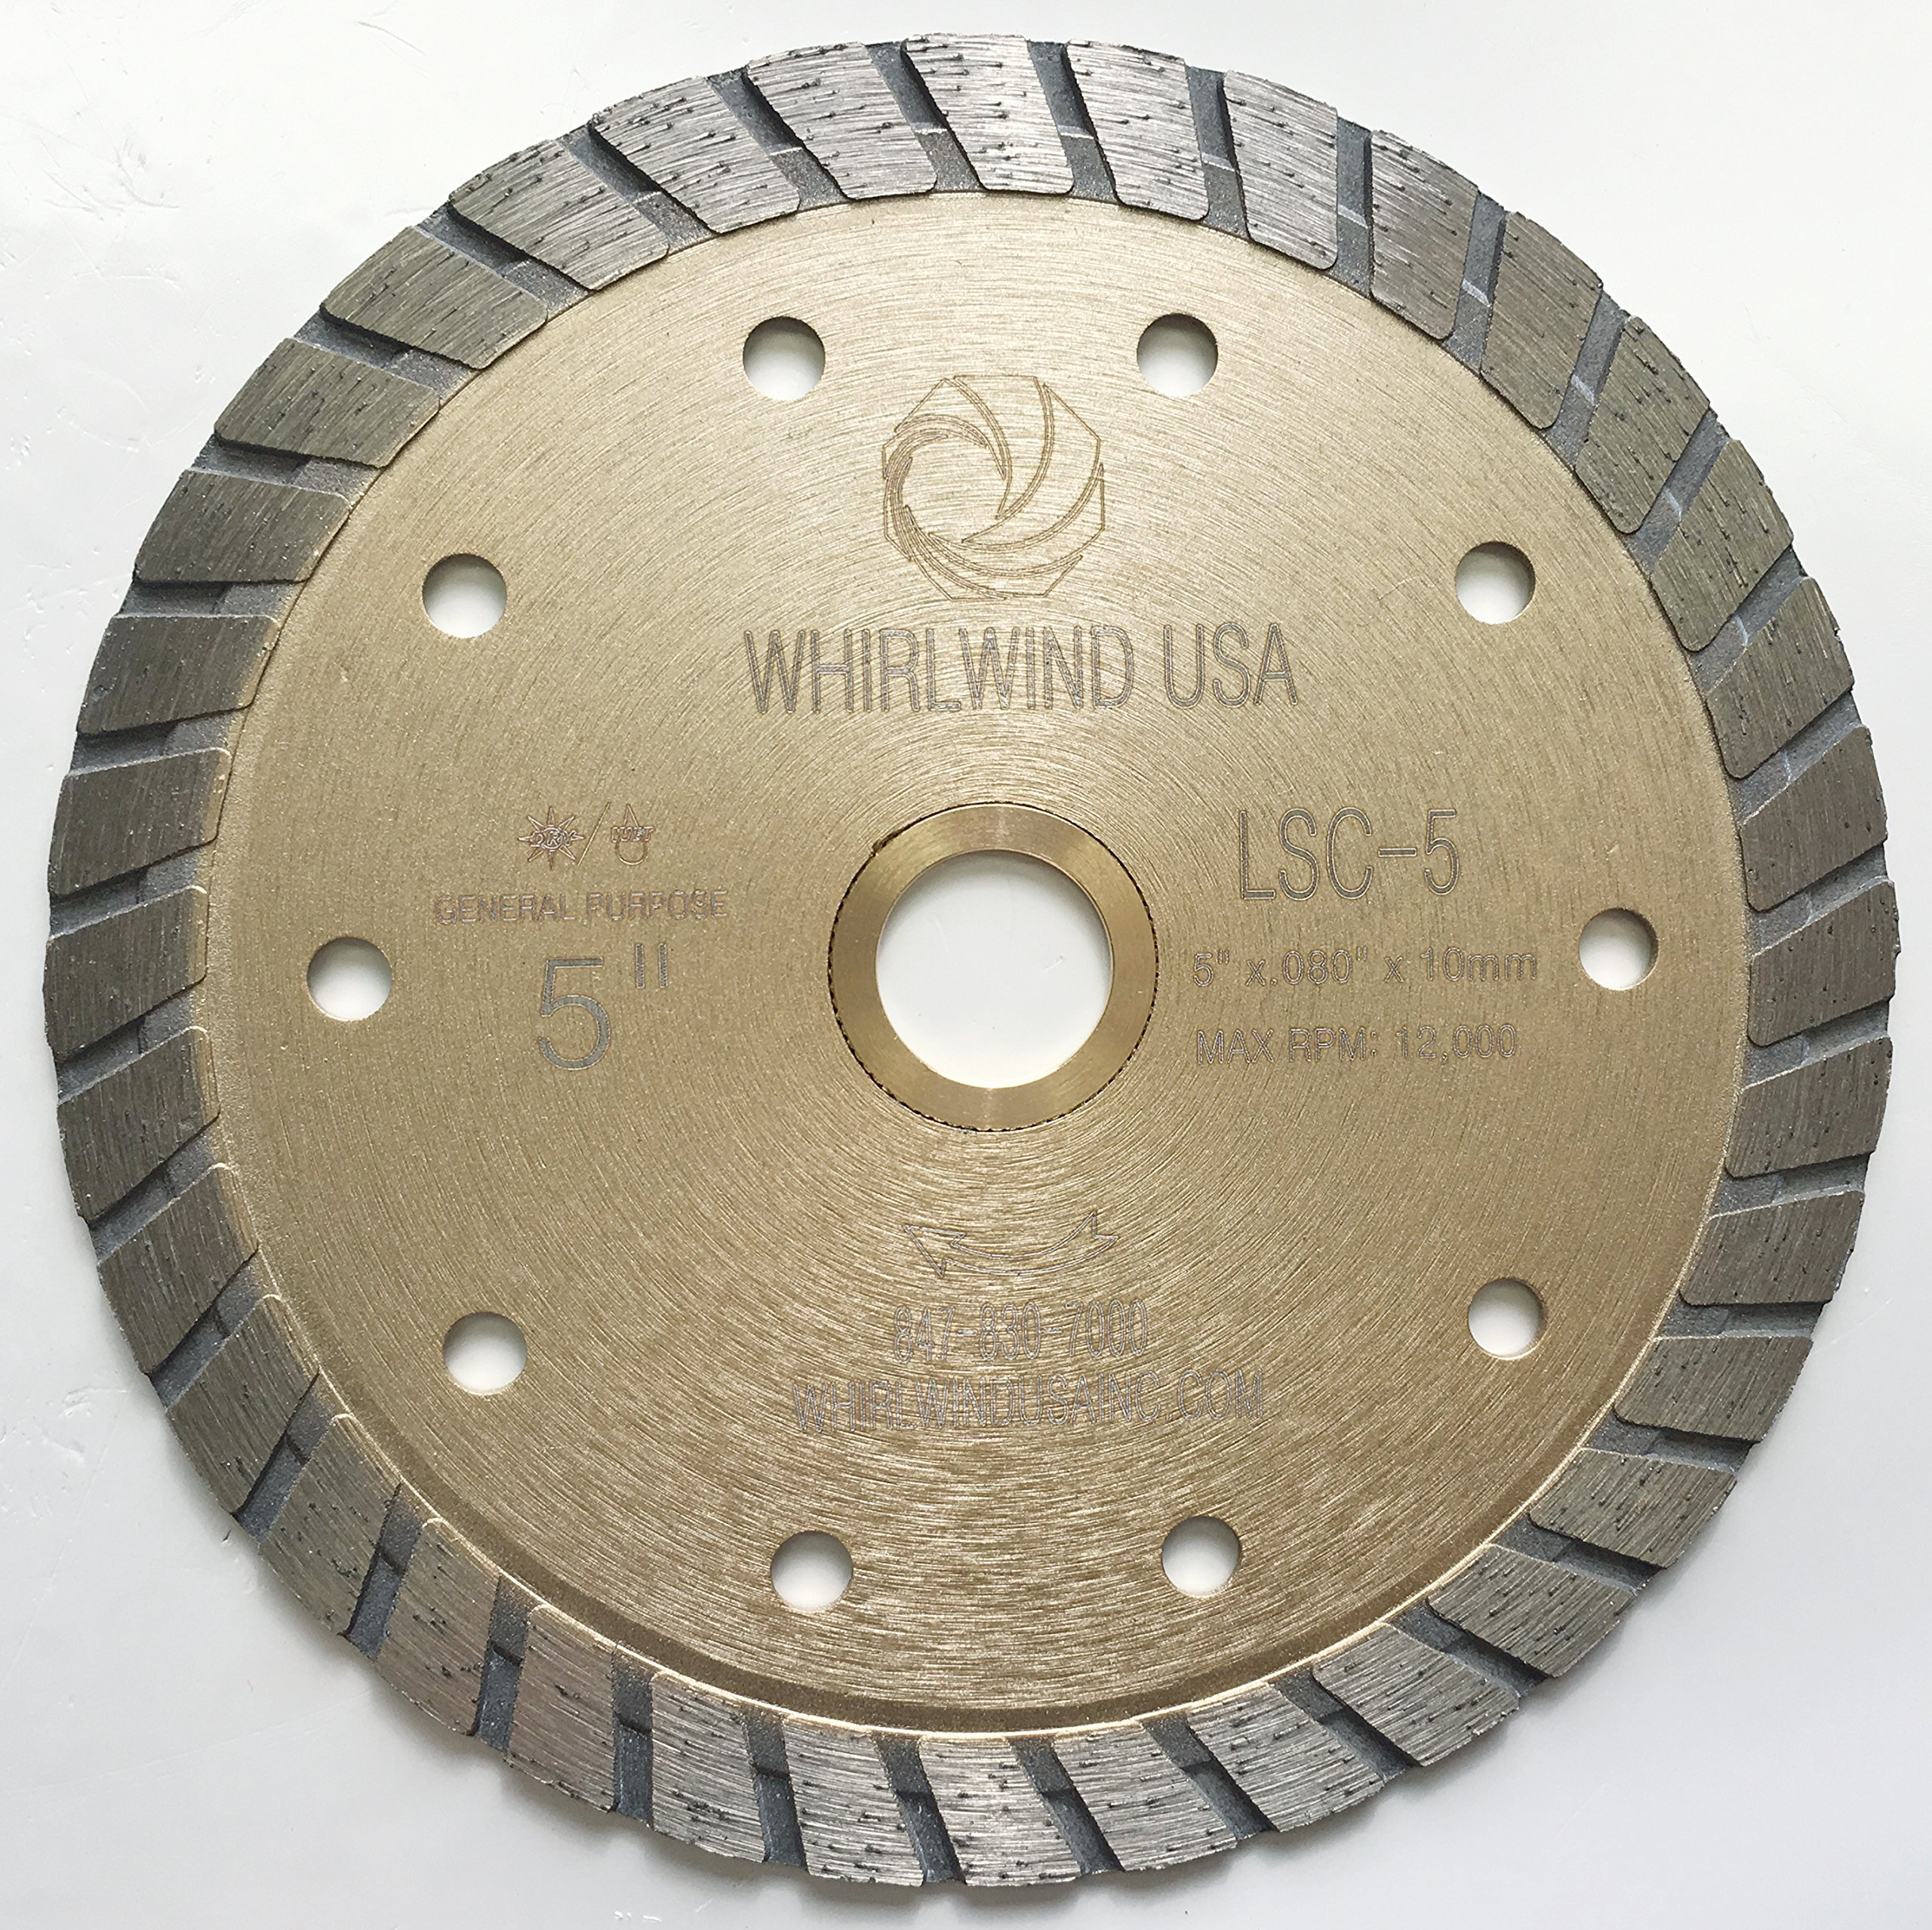 Whirlwind USA LSC 5-inch Dry or Wet Cutting General Purpose Continuous Turbo Power Saw Diamond Blades for Concrete Masonry Brick Stone (Factory Direct Sale) (5'')